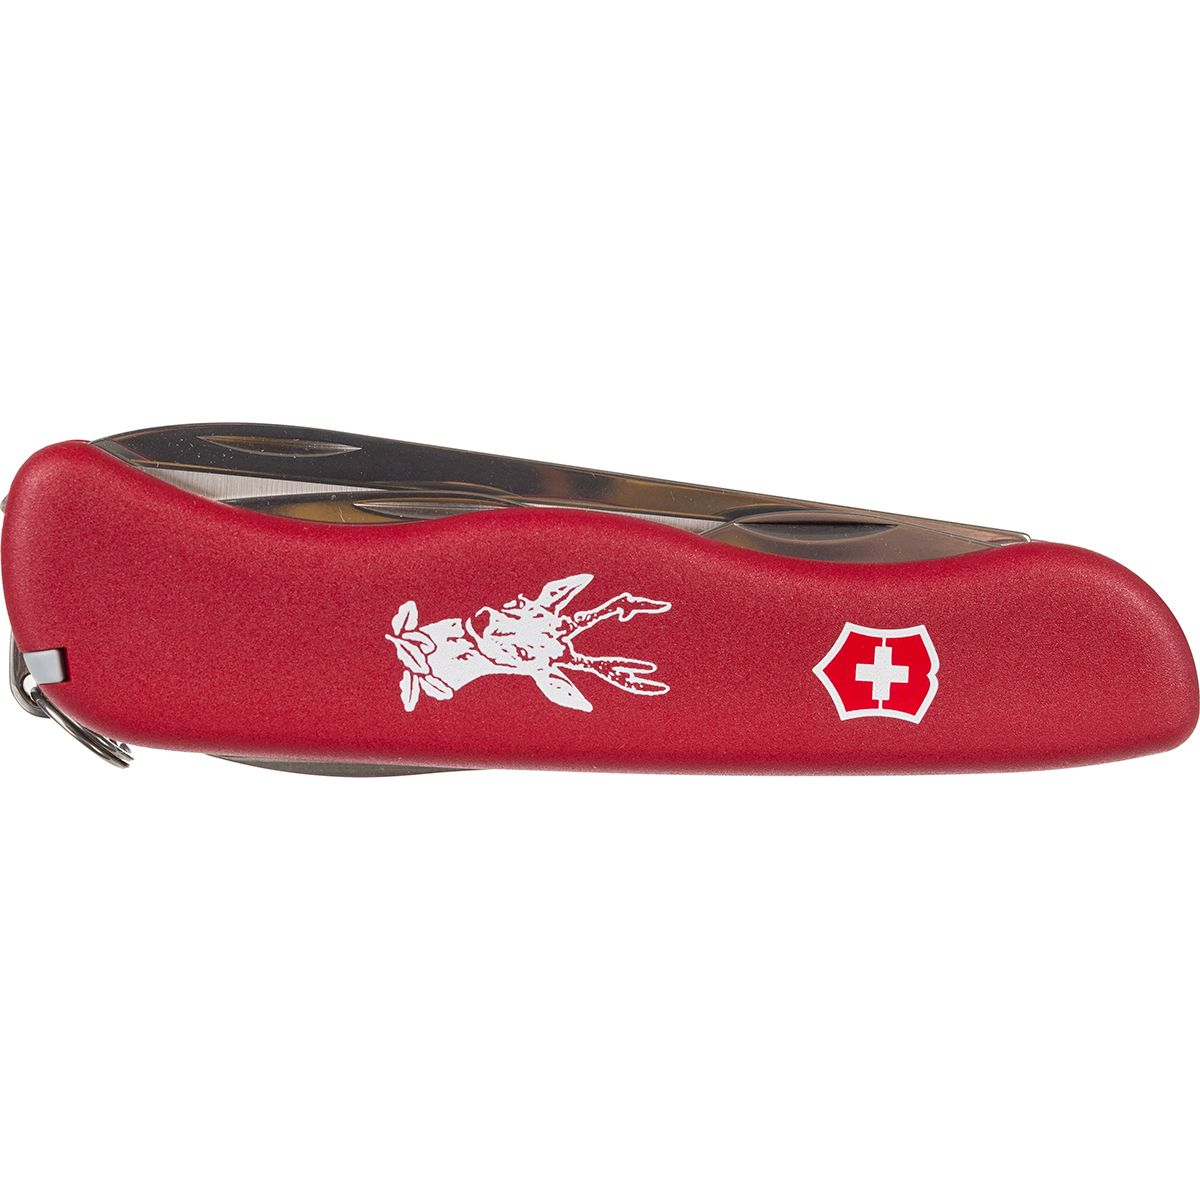 Victorinox Swiss Army Hunter